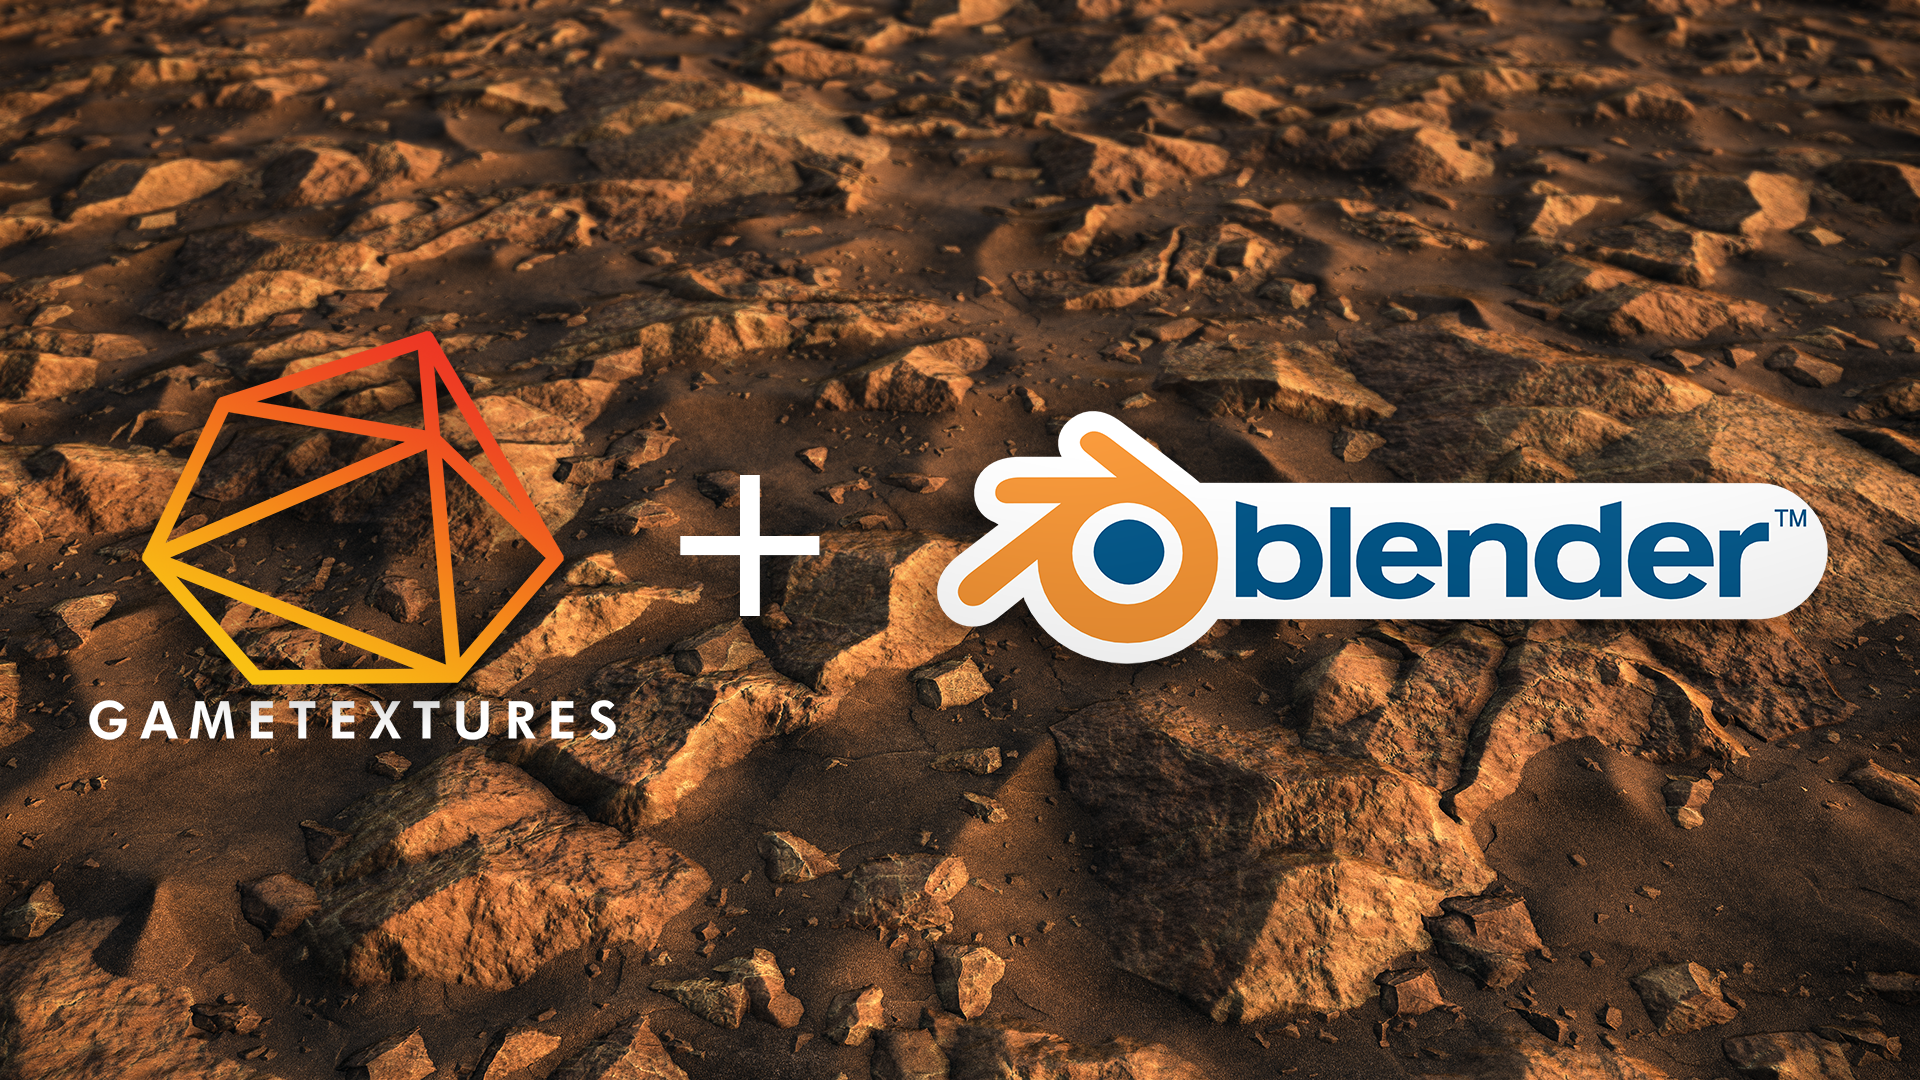 Introducing The Largest Library of Blender-Ready Materials